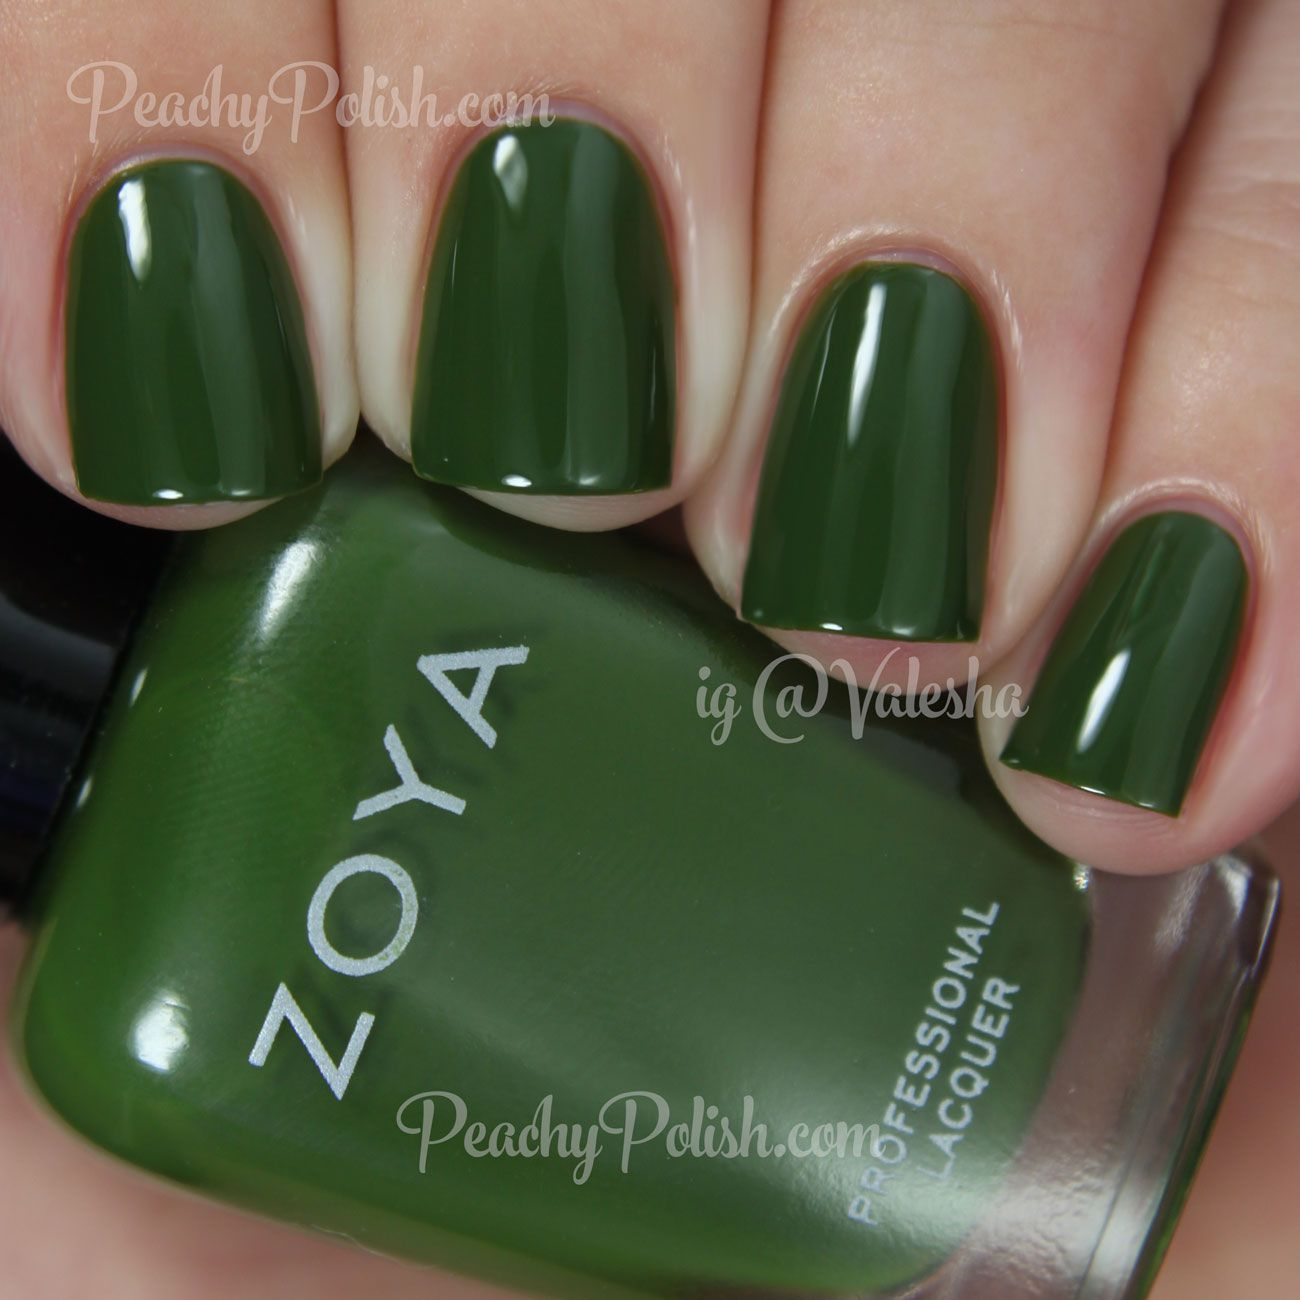 Ness, a lovely, soft jade green nail polish / lacquer from the Zoya ...